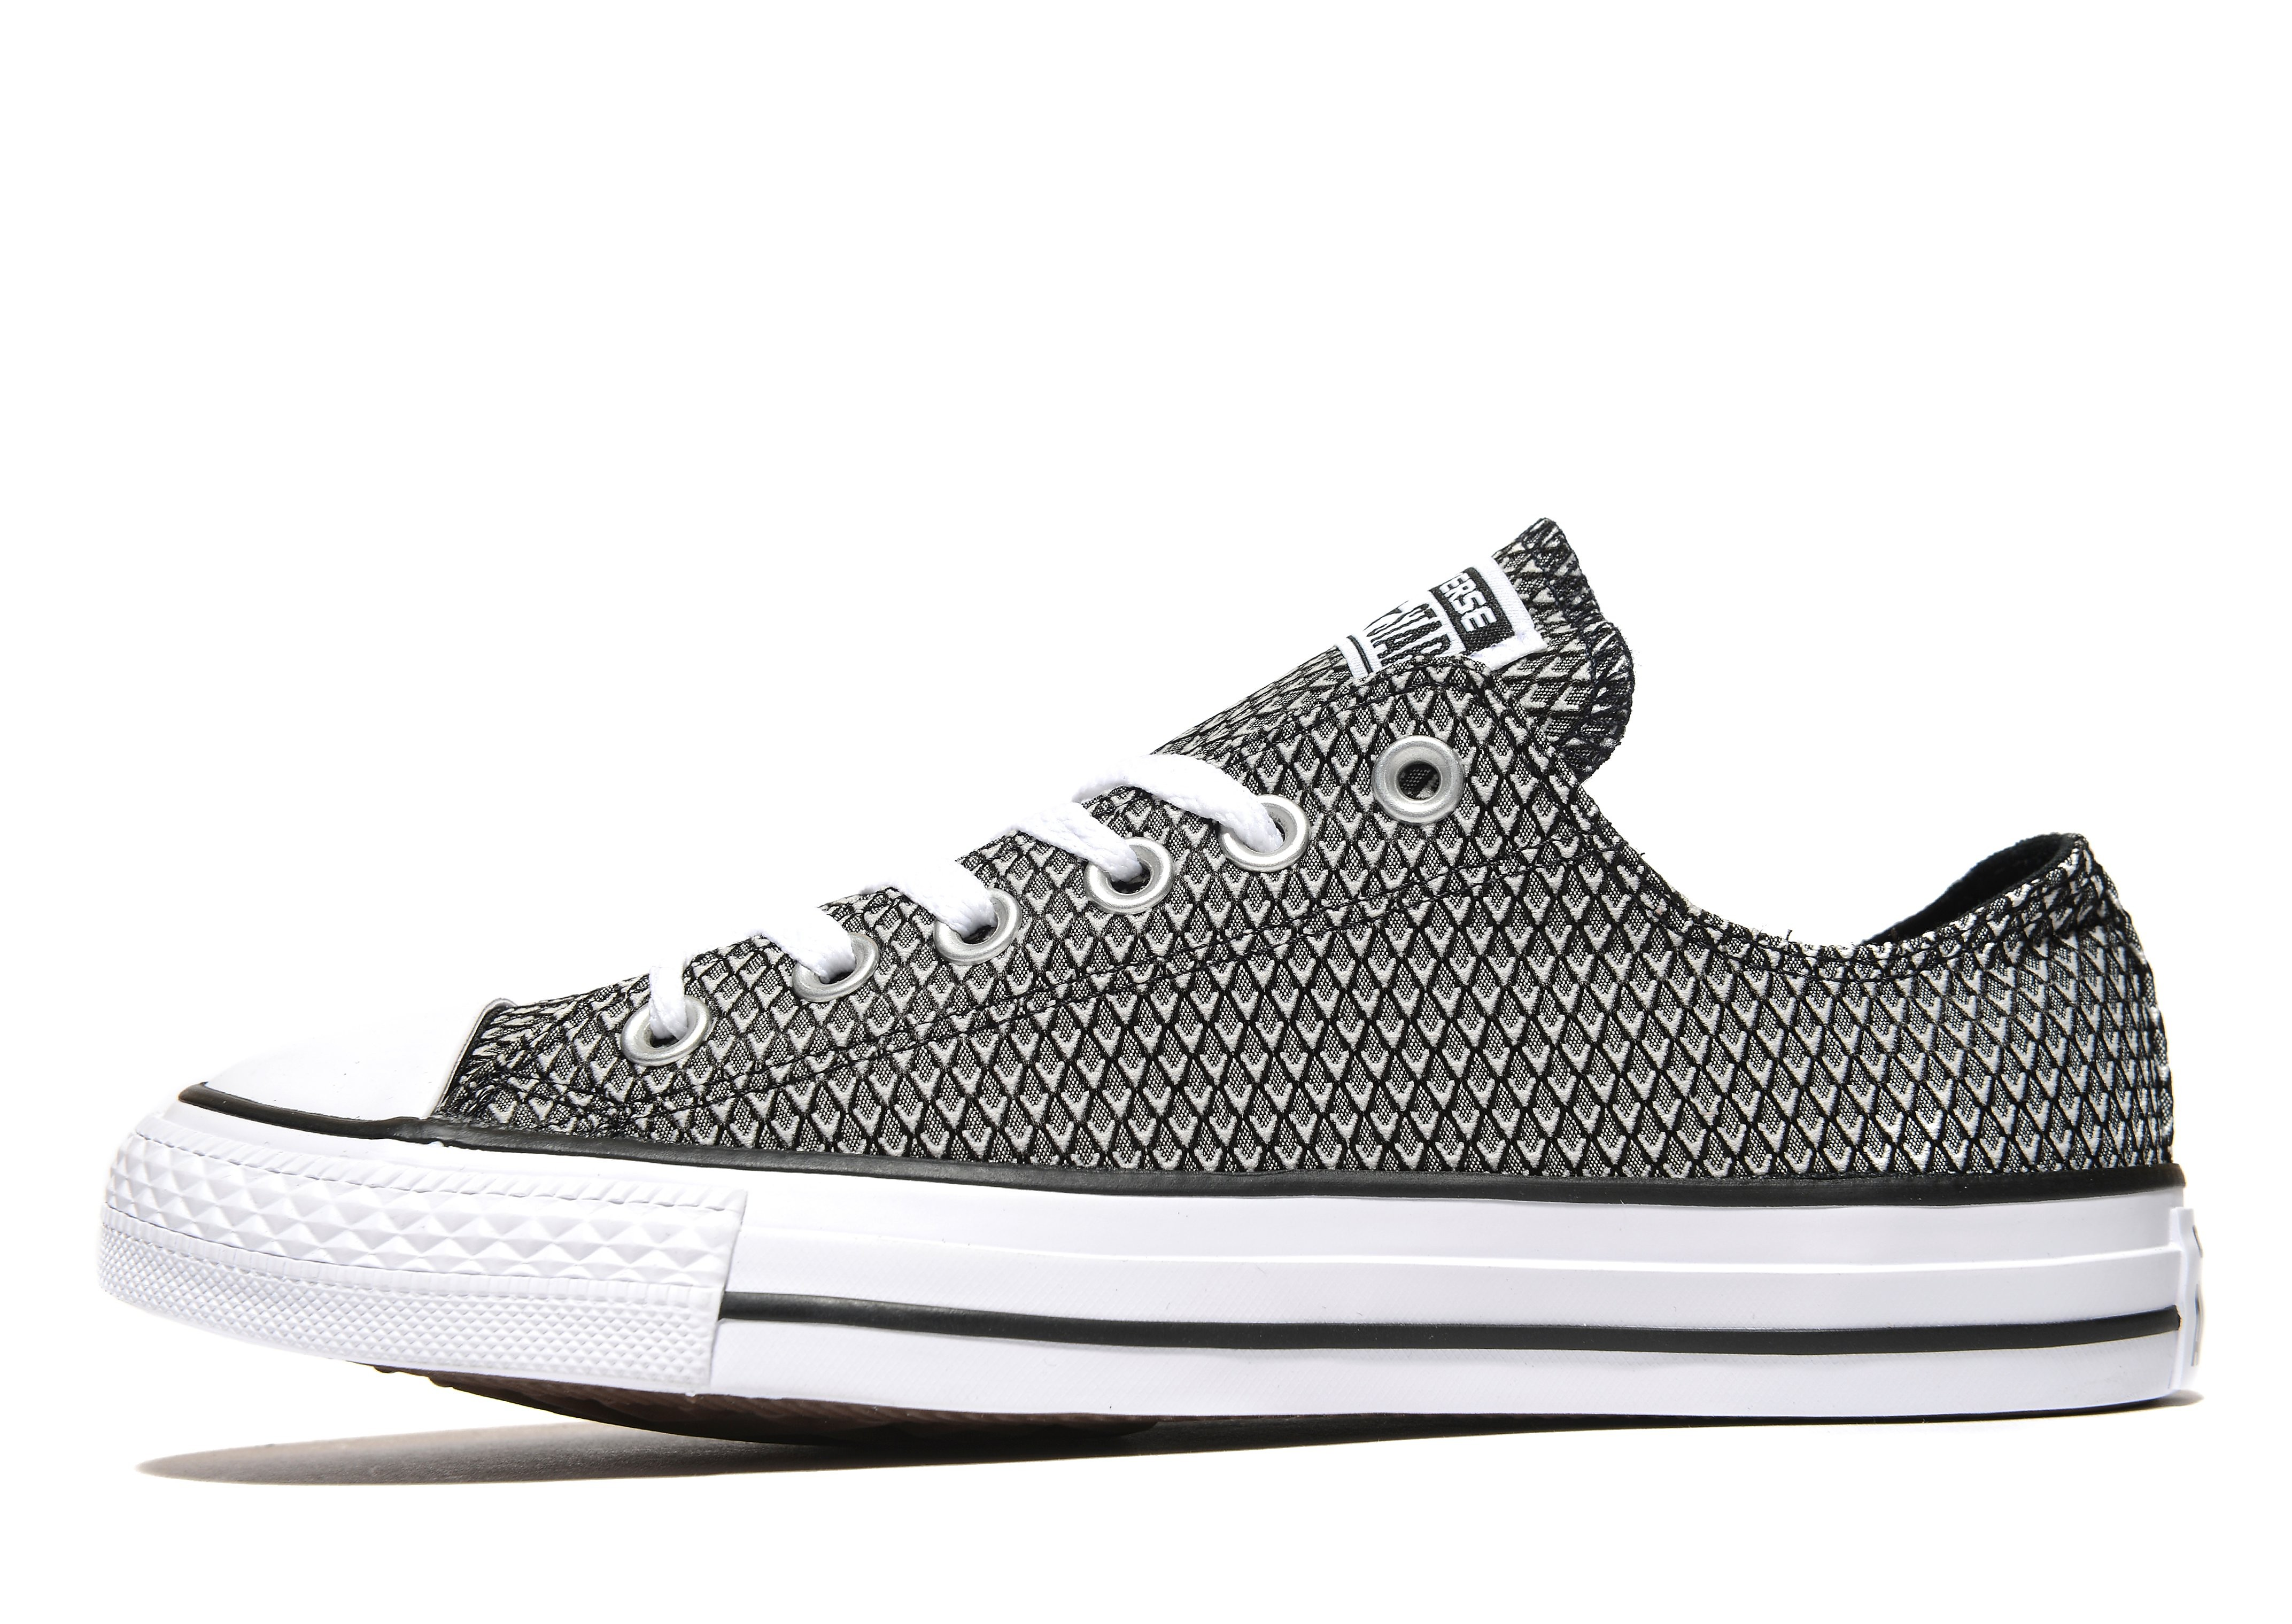 Converse Chuck Taylor All Star Woven Women's